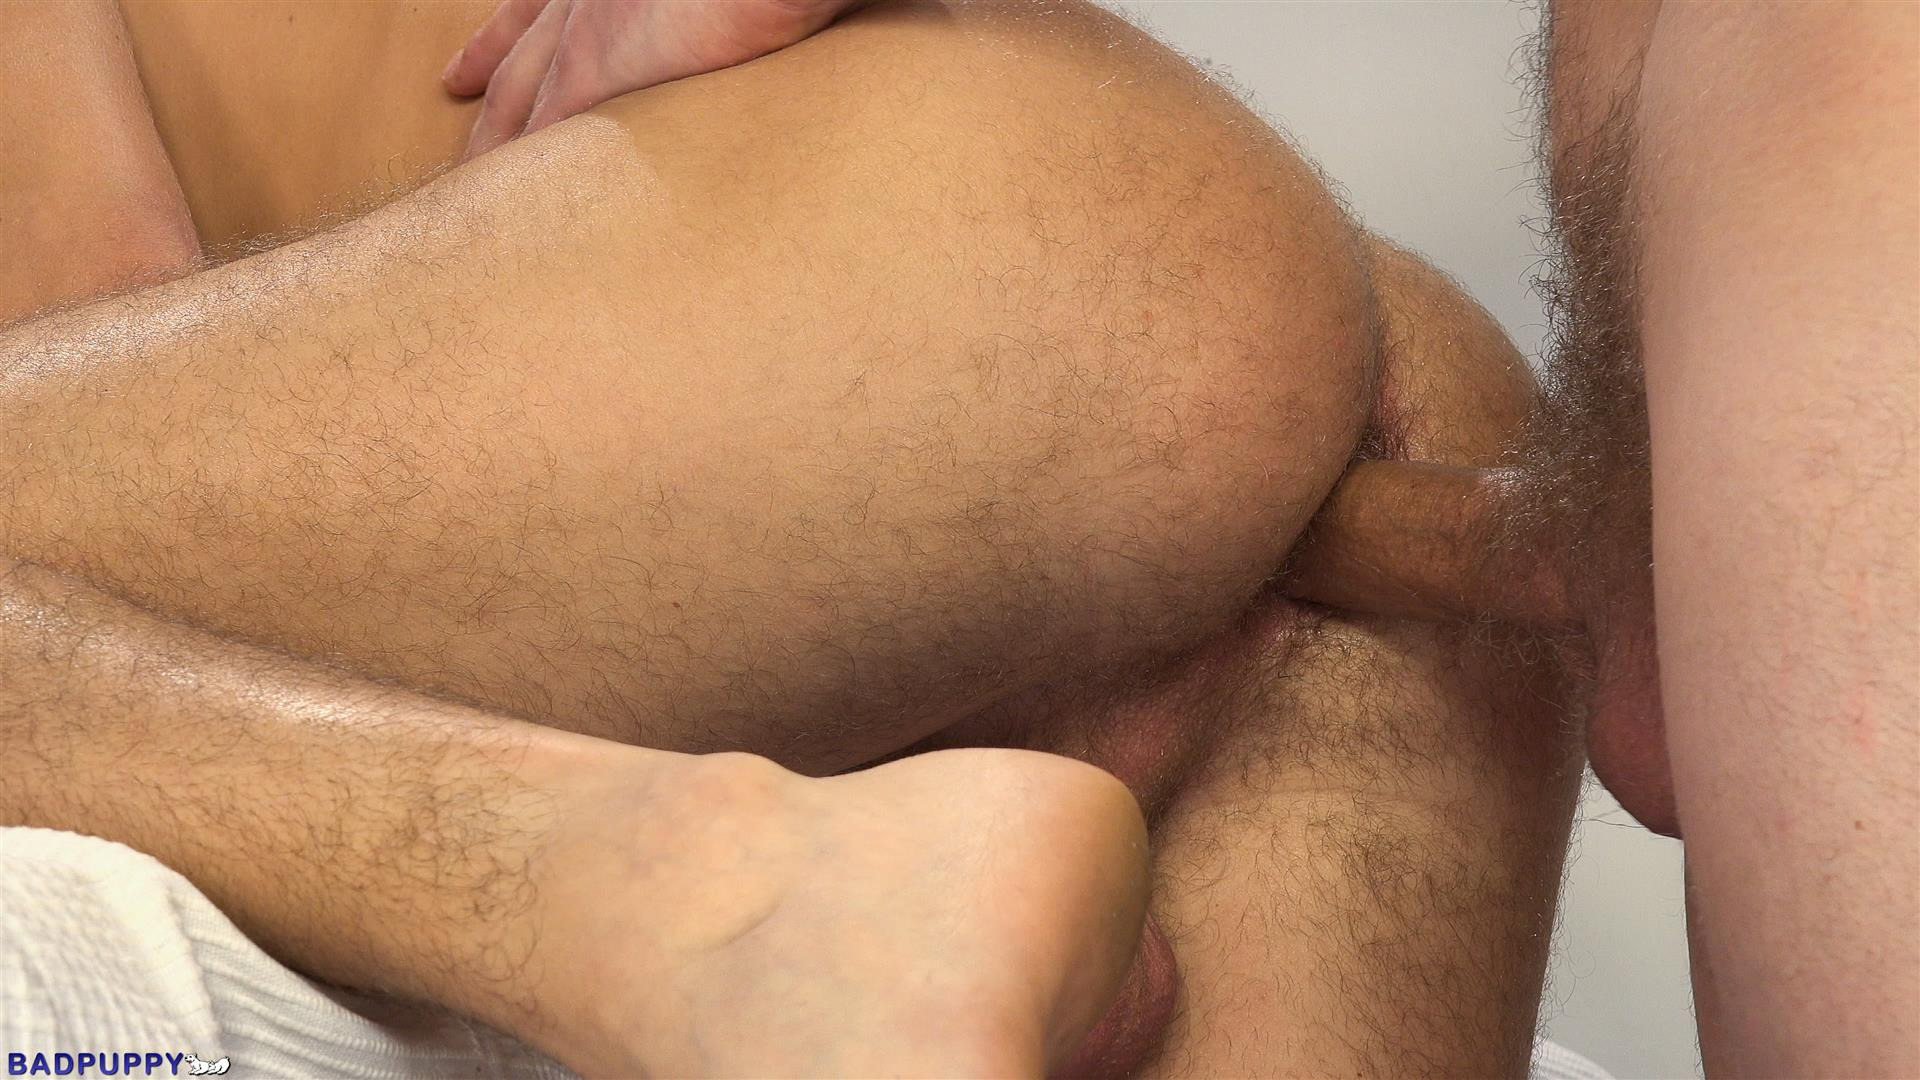 Badpuppy-Nikol-Monak-and-Rosta-Benecky-Czech-Guys-Fucking-Bareback-Amateur-Gay-Porn-25 Czech Hunks With Big Uncut Cocks Fucking At The Doctors Office